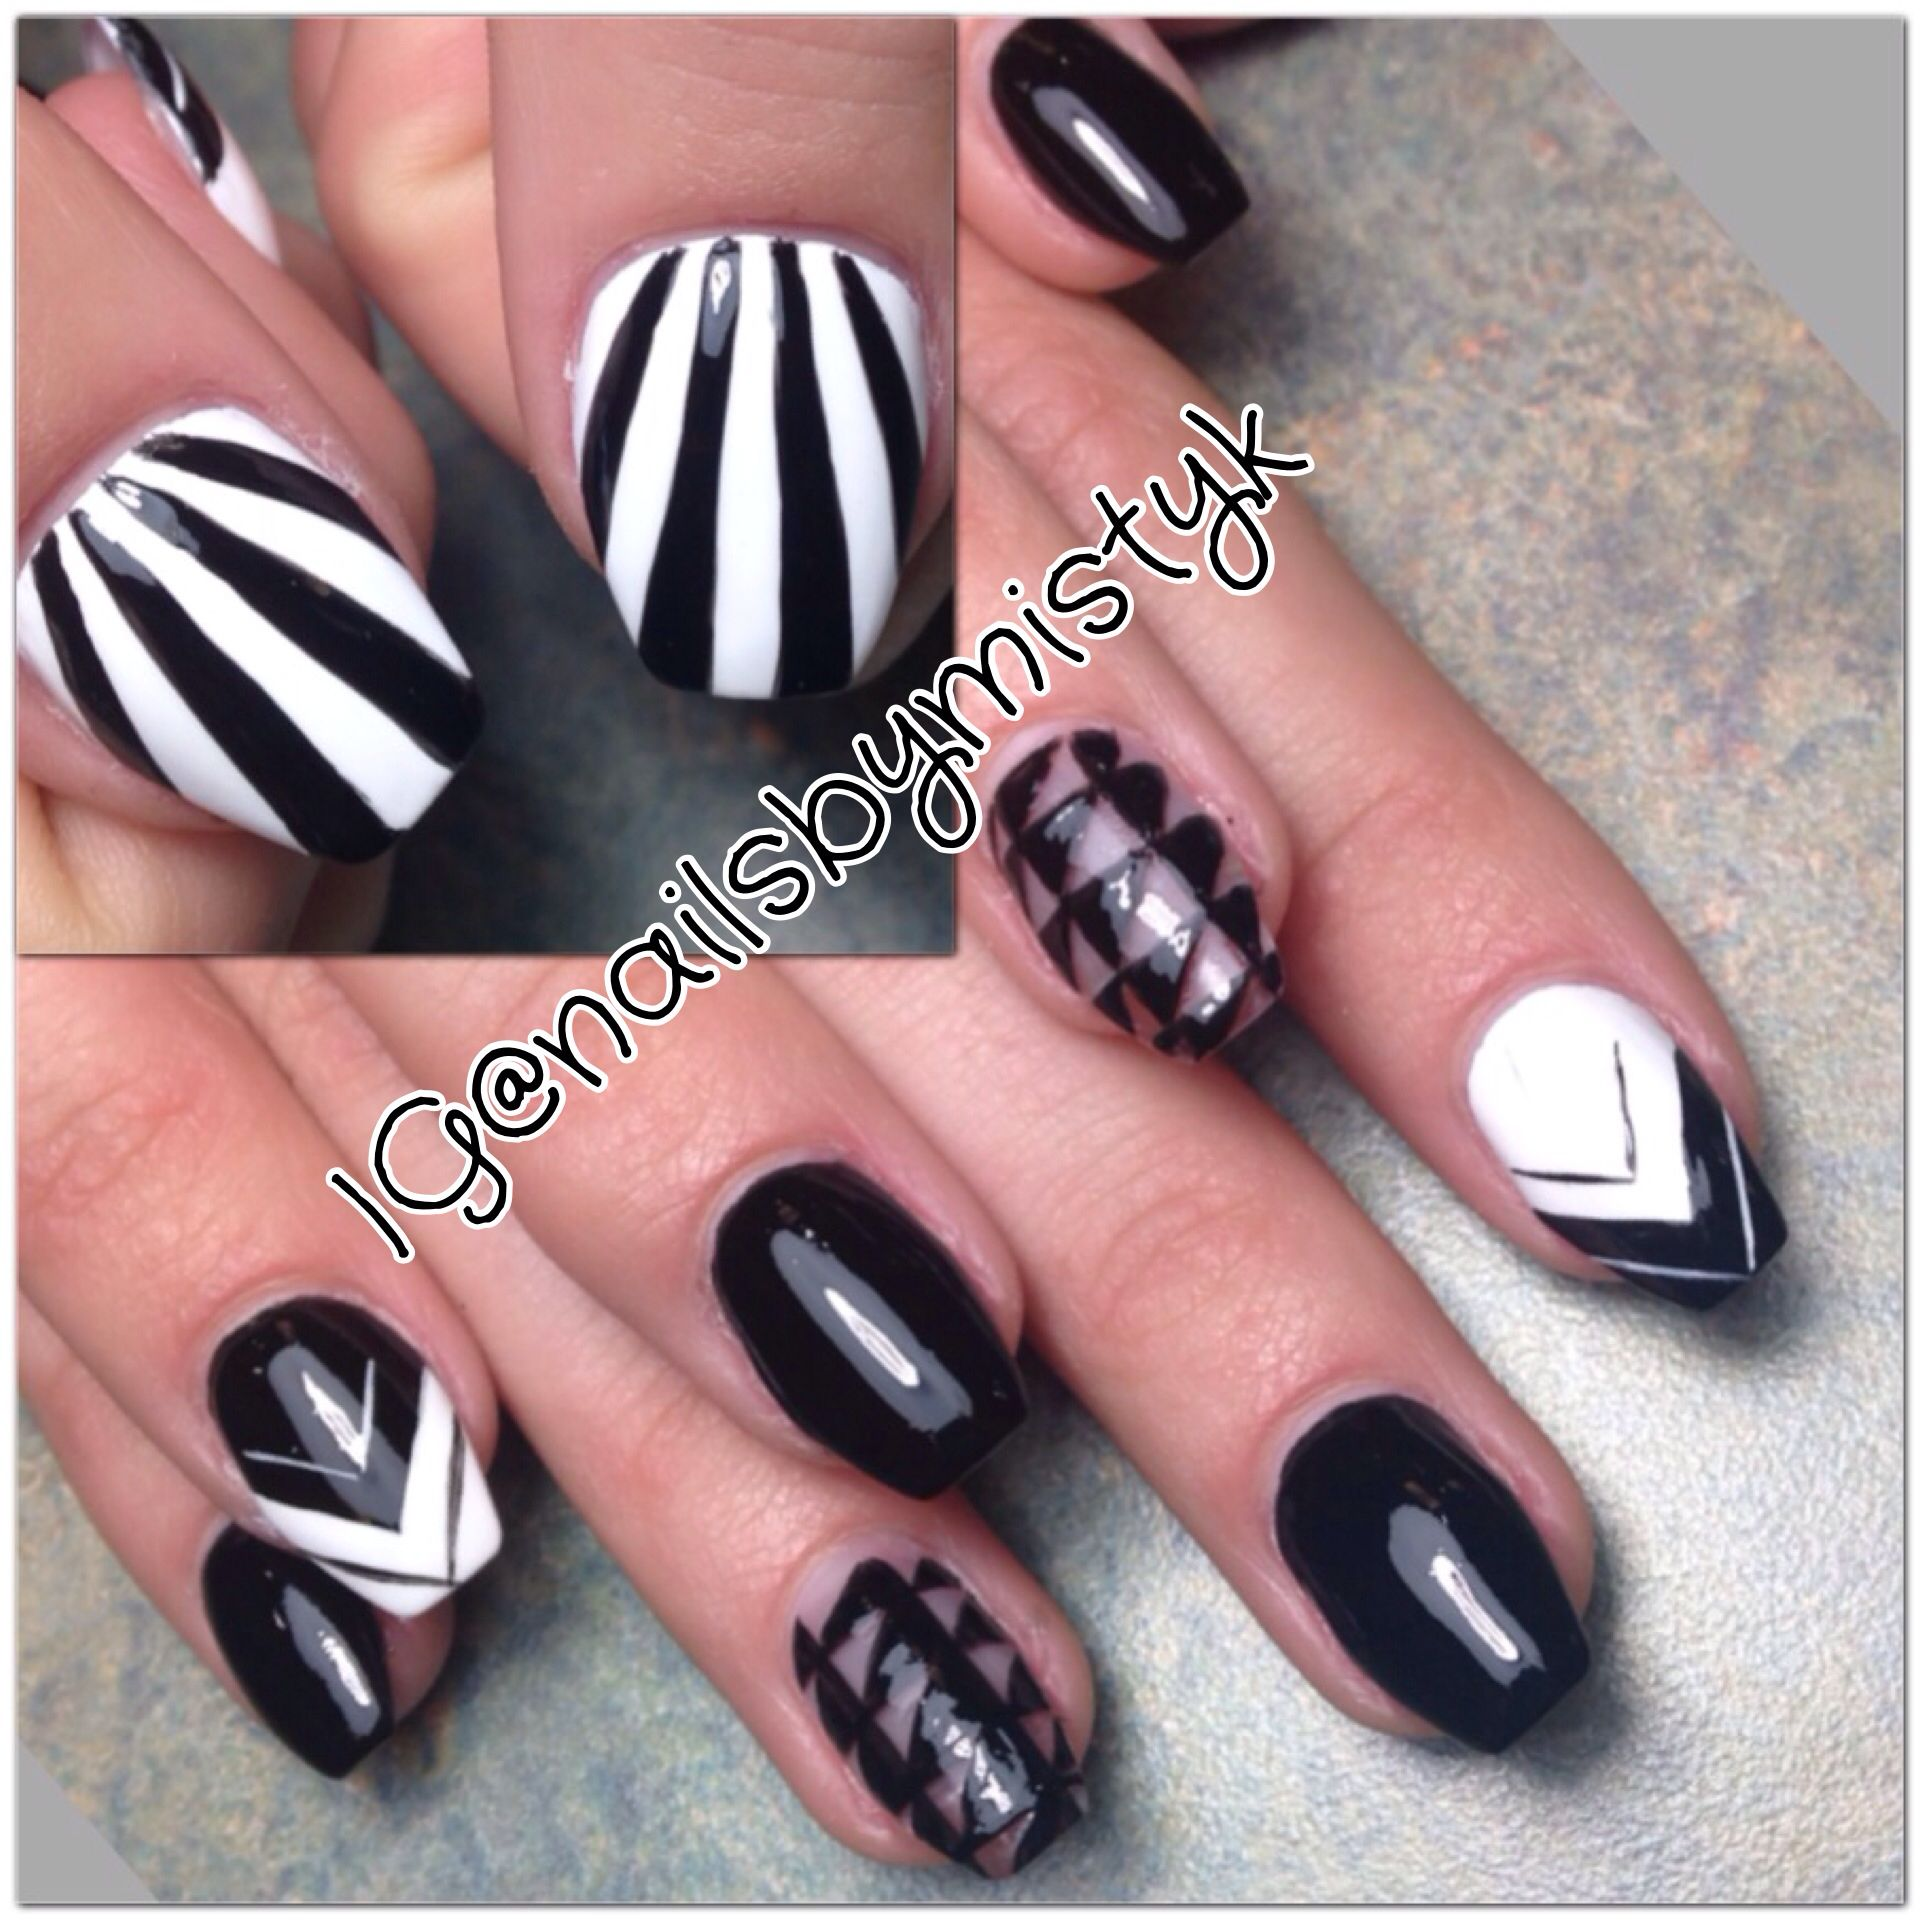 Vinyl Luxe Nail Art Unique Nail Art Black And Whit Nail Design